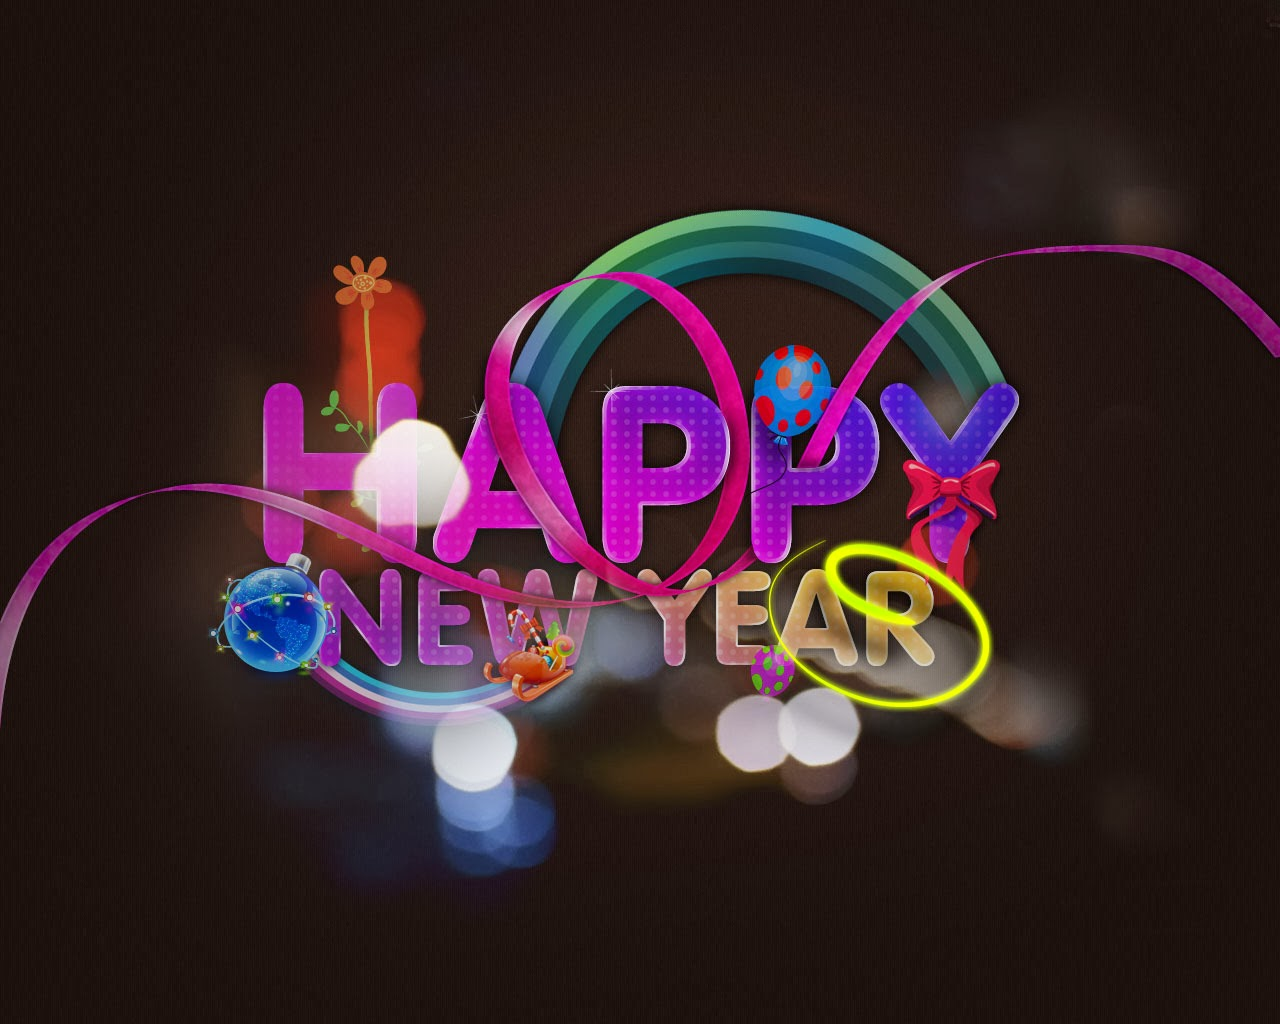 Beautiful Wallpapers For Desktop Happy New Year Wallpapers 1280x1024